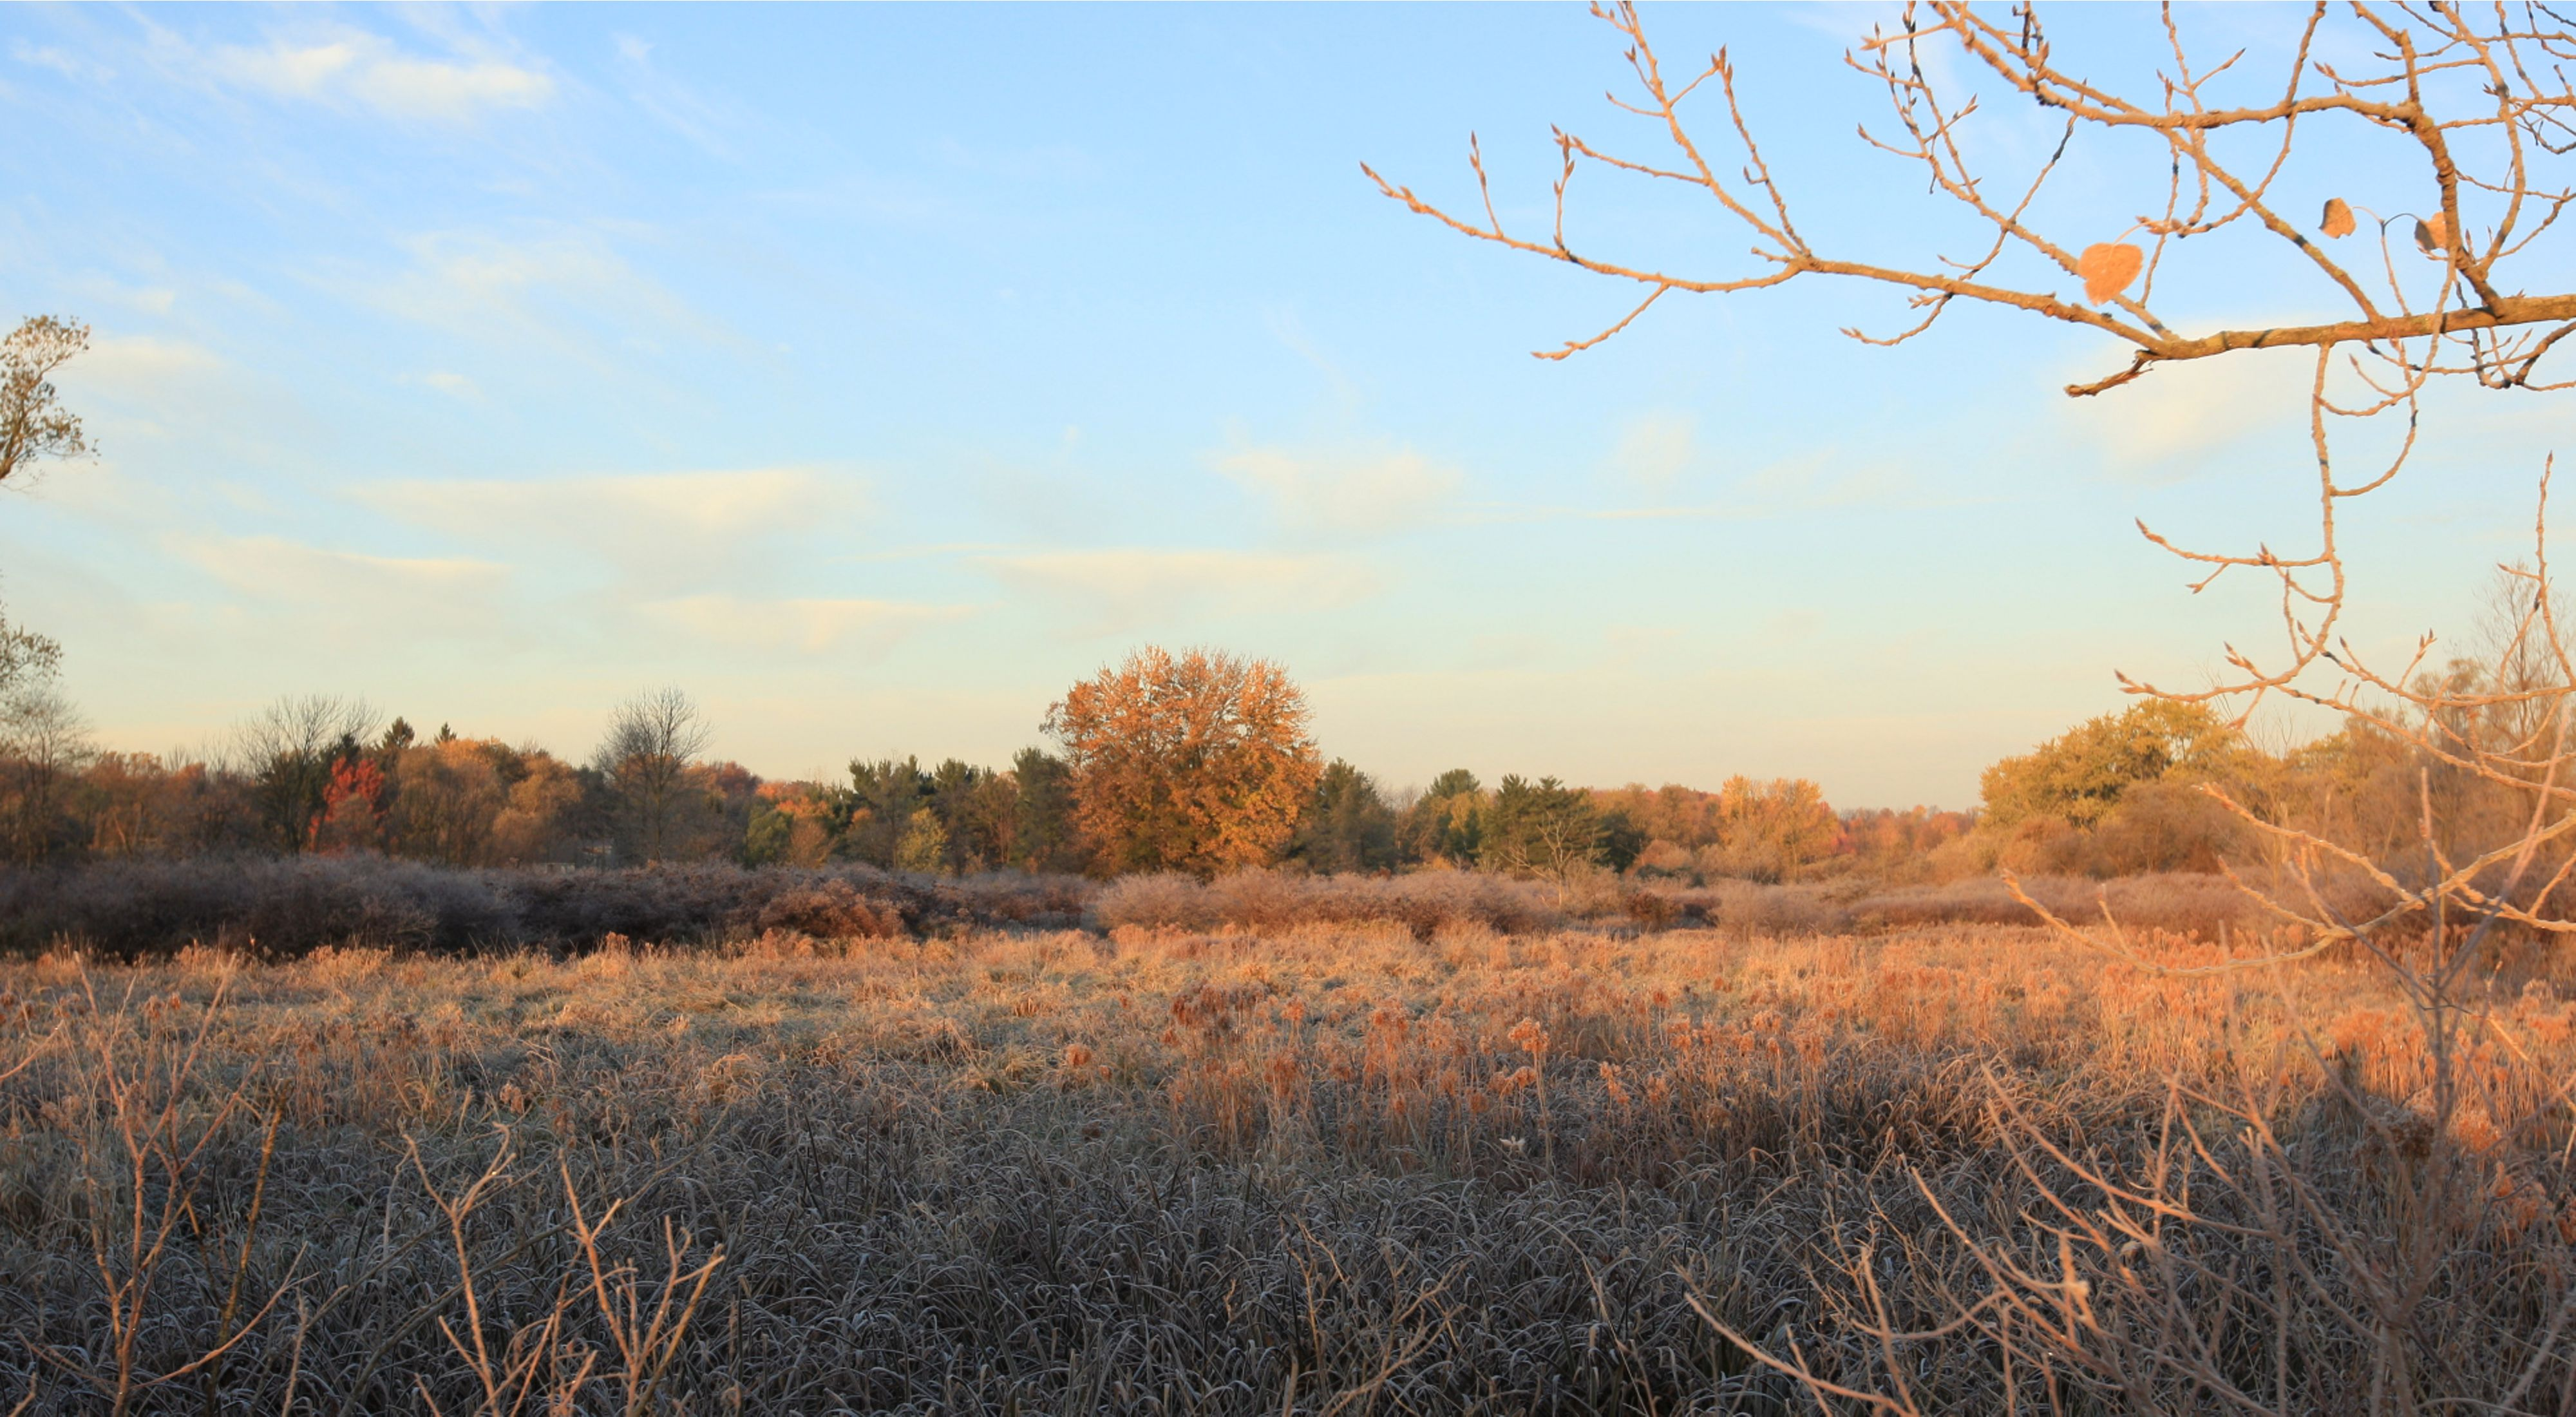 Beck Fen is one of a only a few high-quality fens that remain of the once extensive wetland system that formed the upper watershed of Tinkers Creek